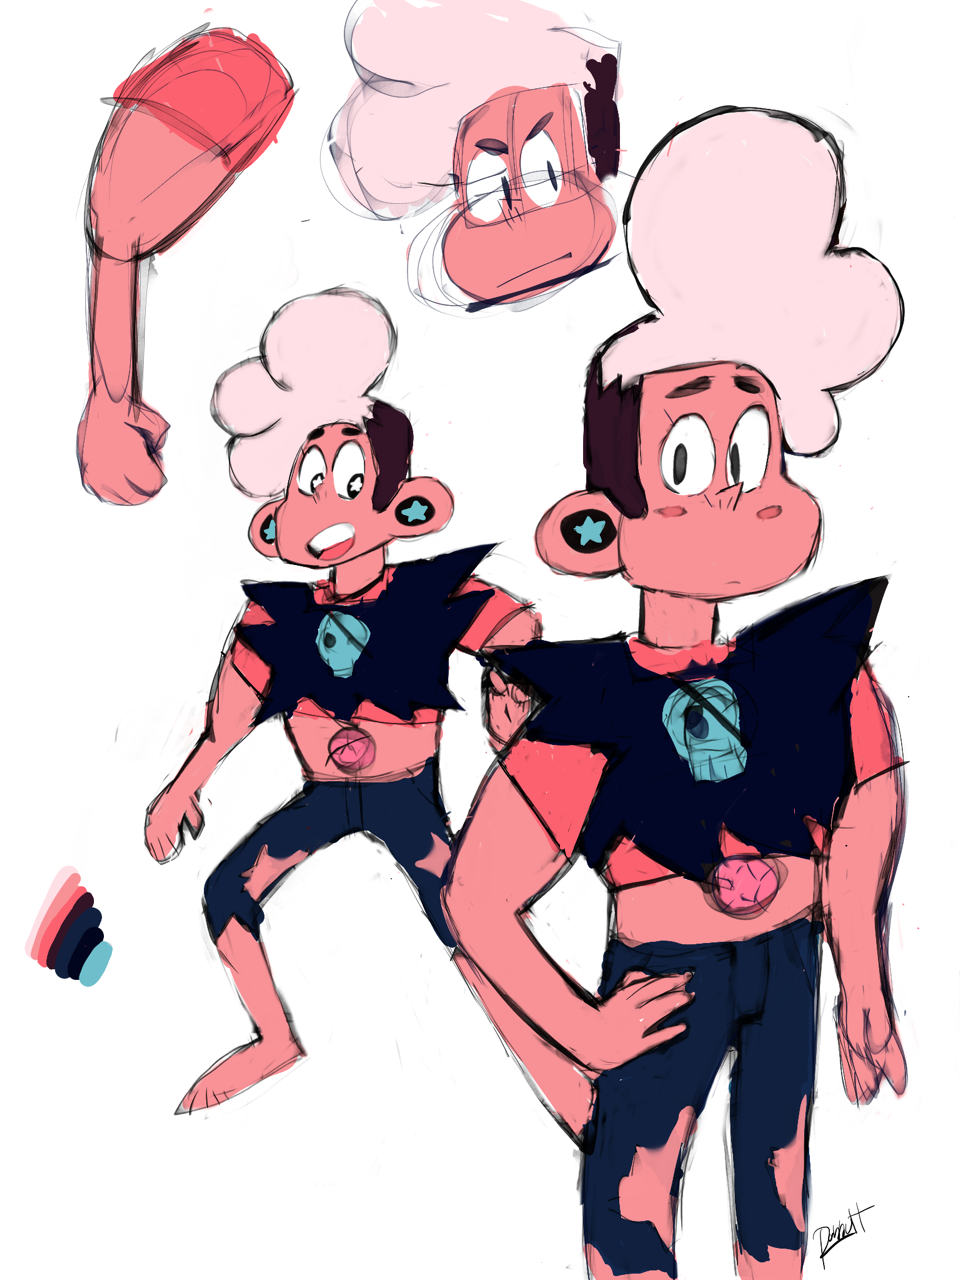 A Stars (Steven/Lars) fusion concept. If you like this design you can use it, as long as you give me credit.